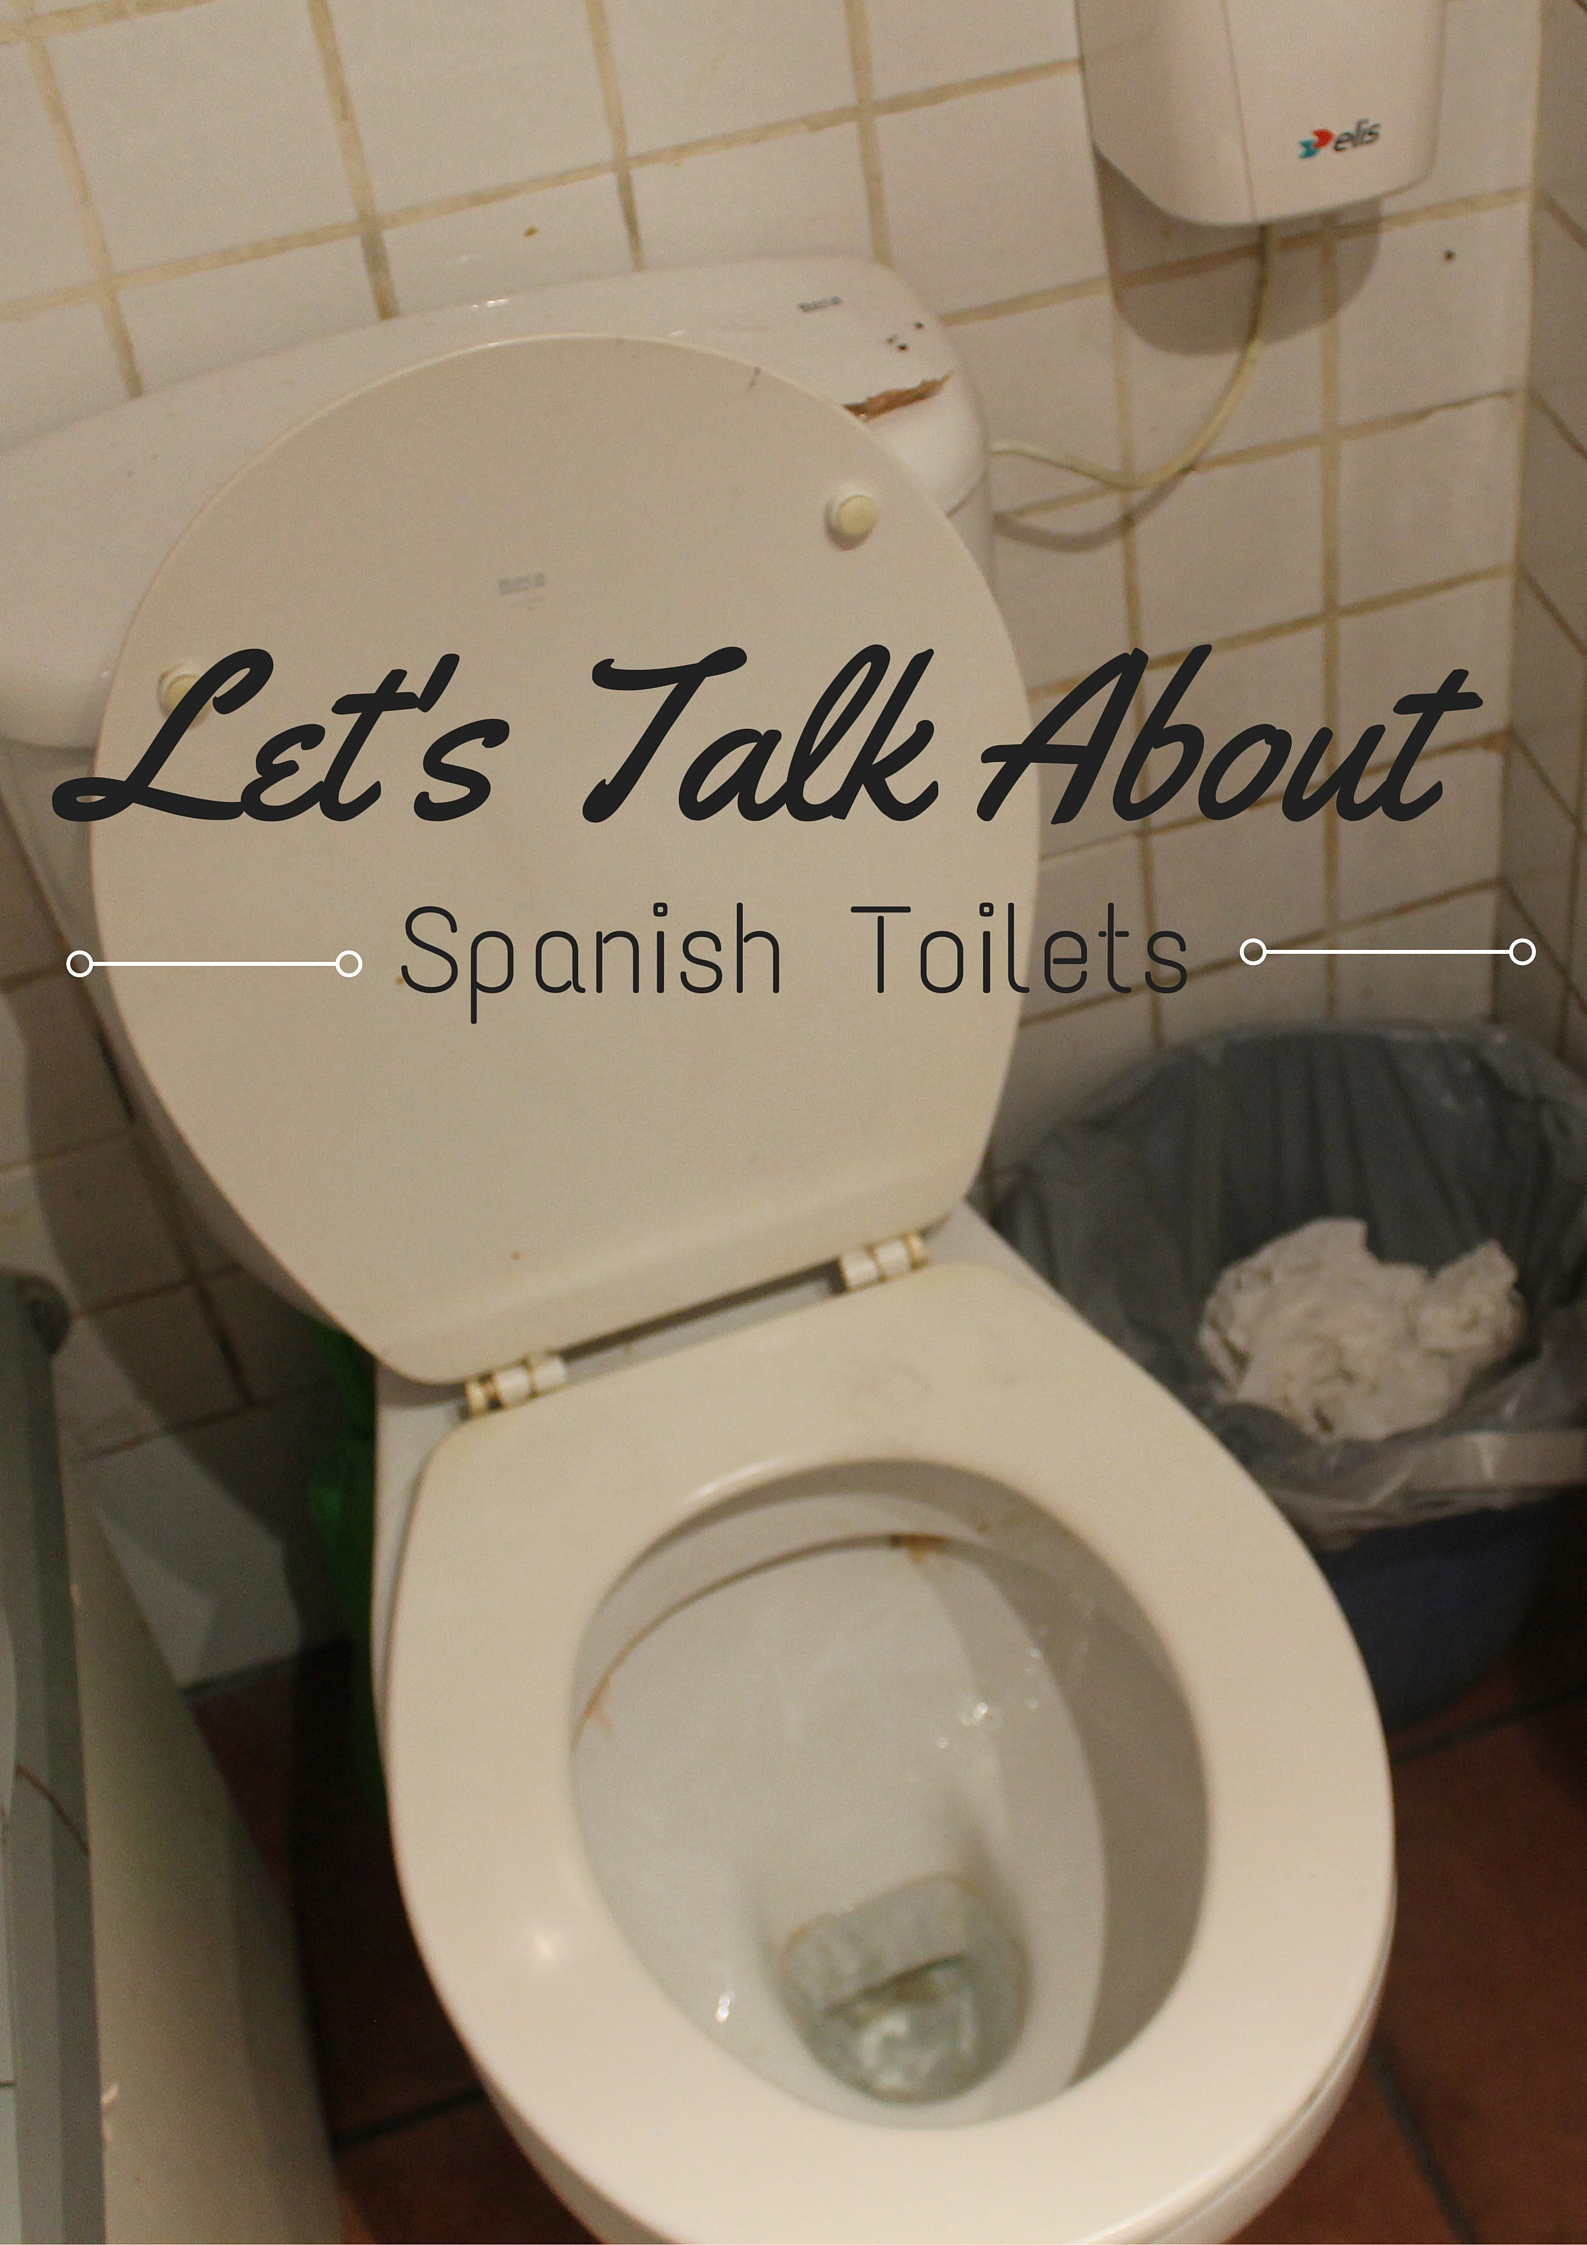 Miraculous Lets Have A Little Talk About Spanish Toilets Sunshine Lamtechconsult Wood Chair Design Ideas Lamtechconsultcom